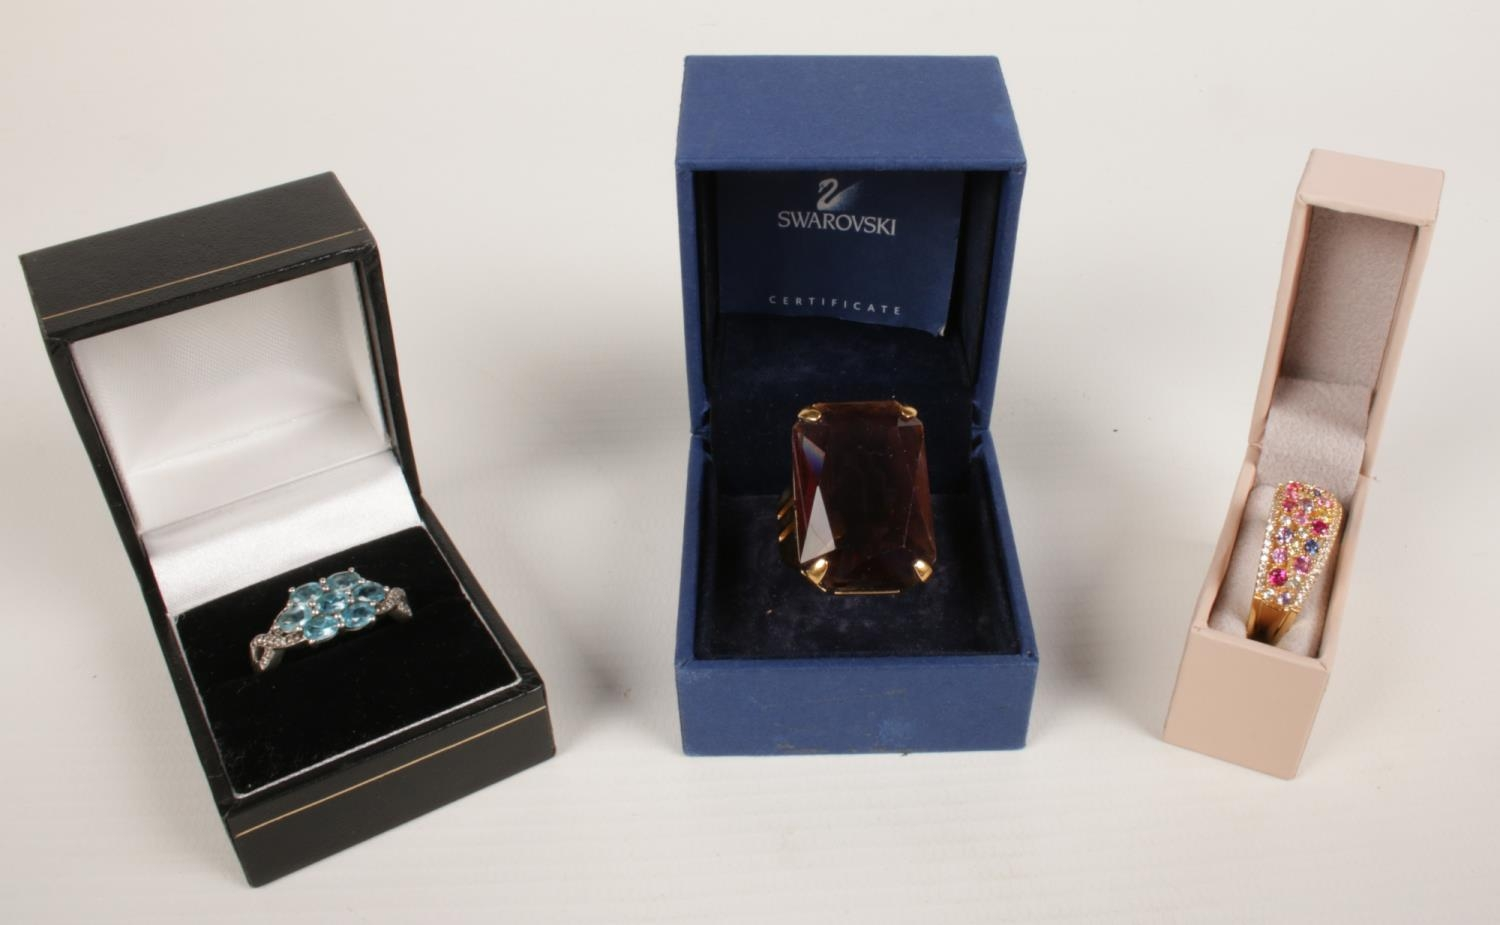 A Swarovski dress ring set with large purple stone along with two other dress rings.